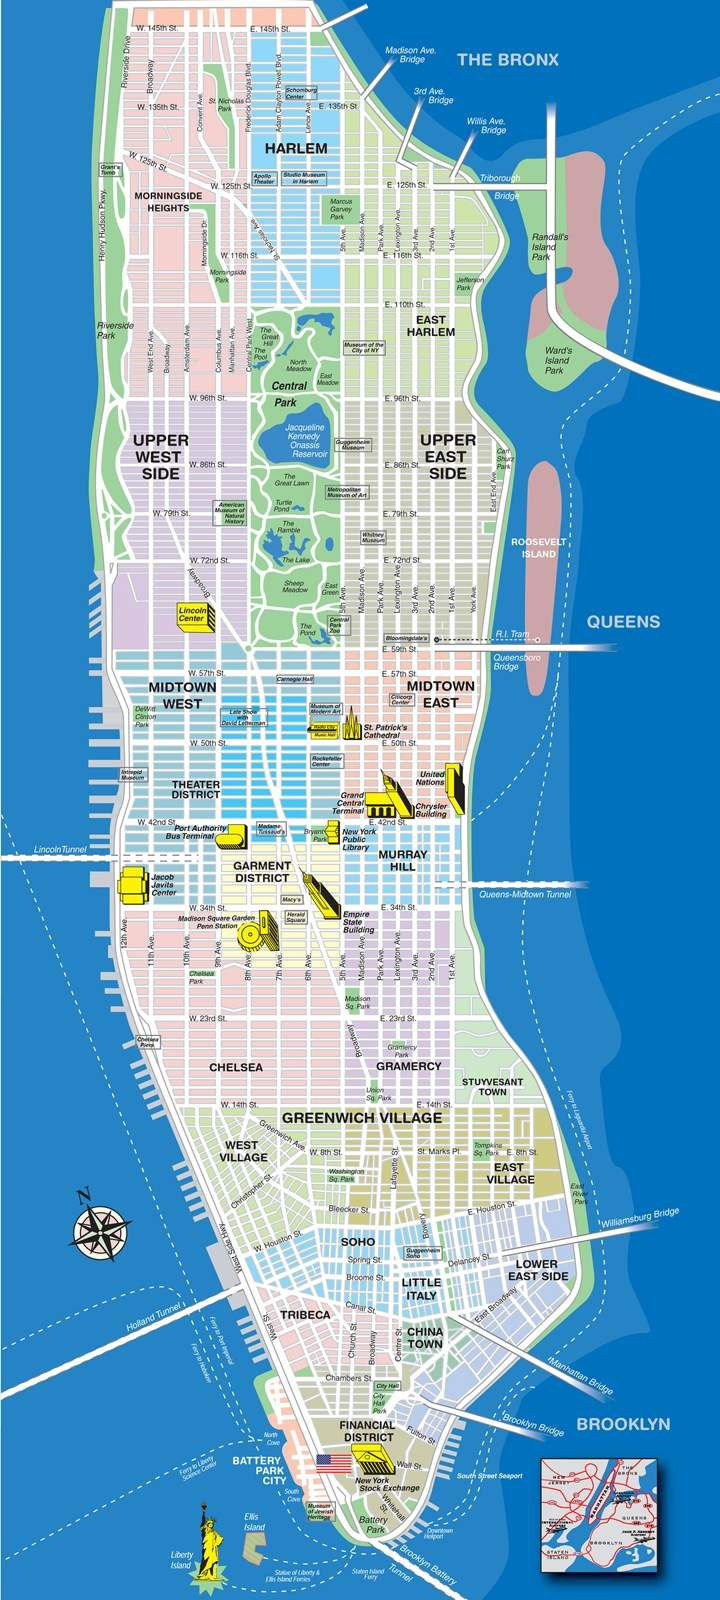 High-Resolution Map Of Manhattan For Print Or Download | Usa Travel - Printable Map Of Manhattan